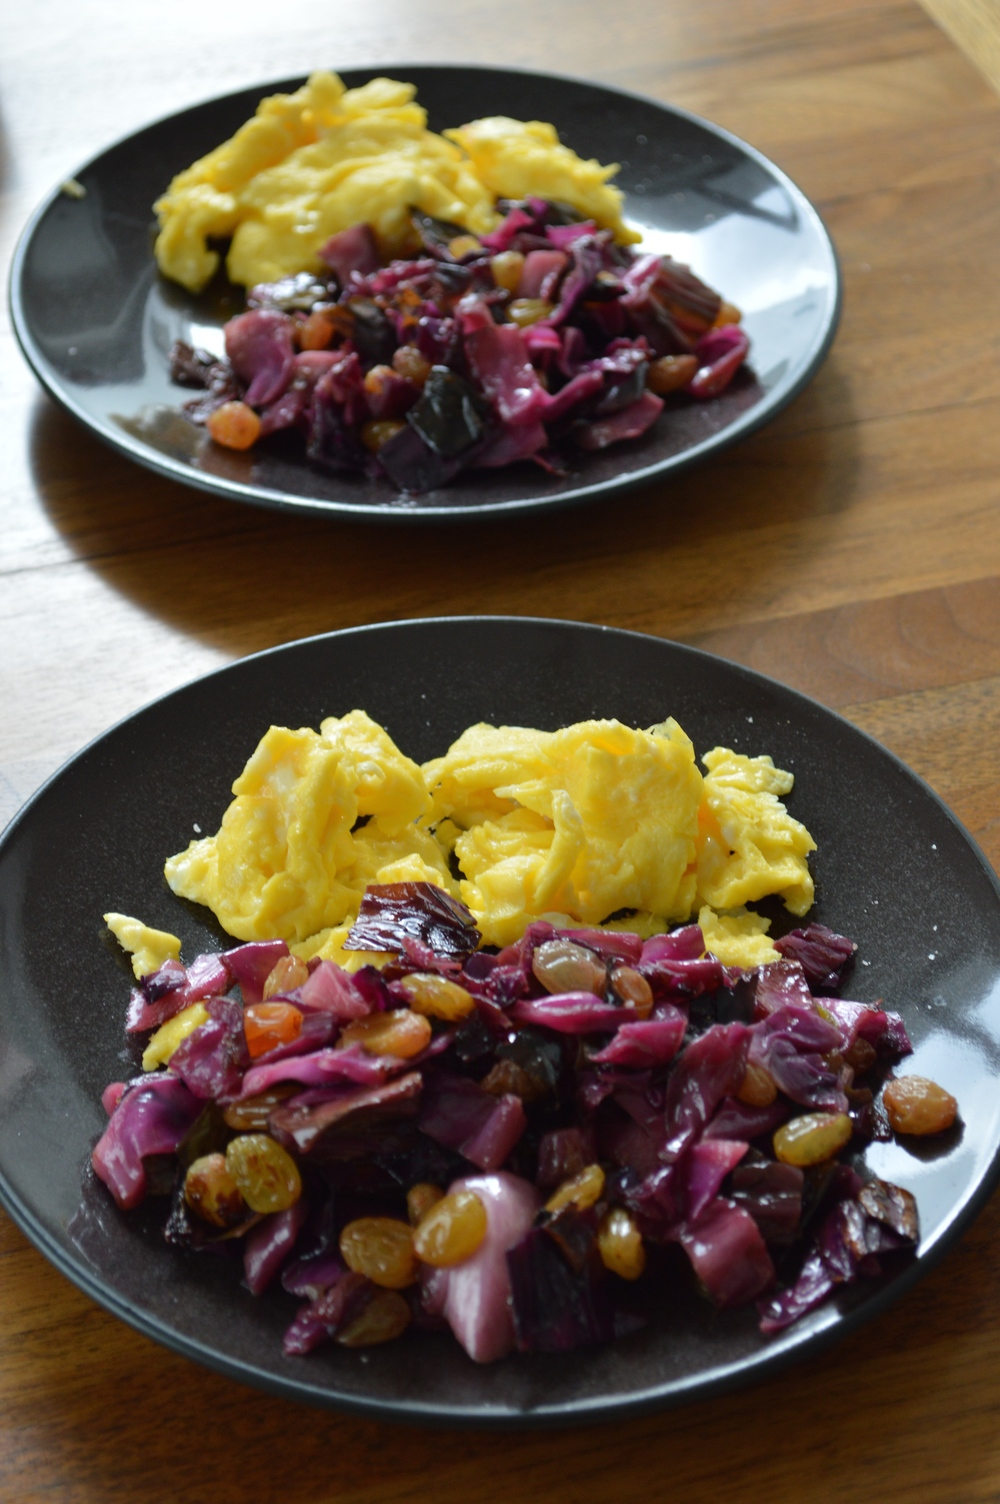 LaurenSchwaiger-Blog-Breakfast-Eggs-Red-Cabbage.jpg